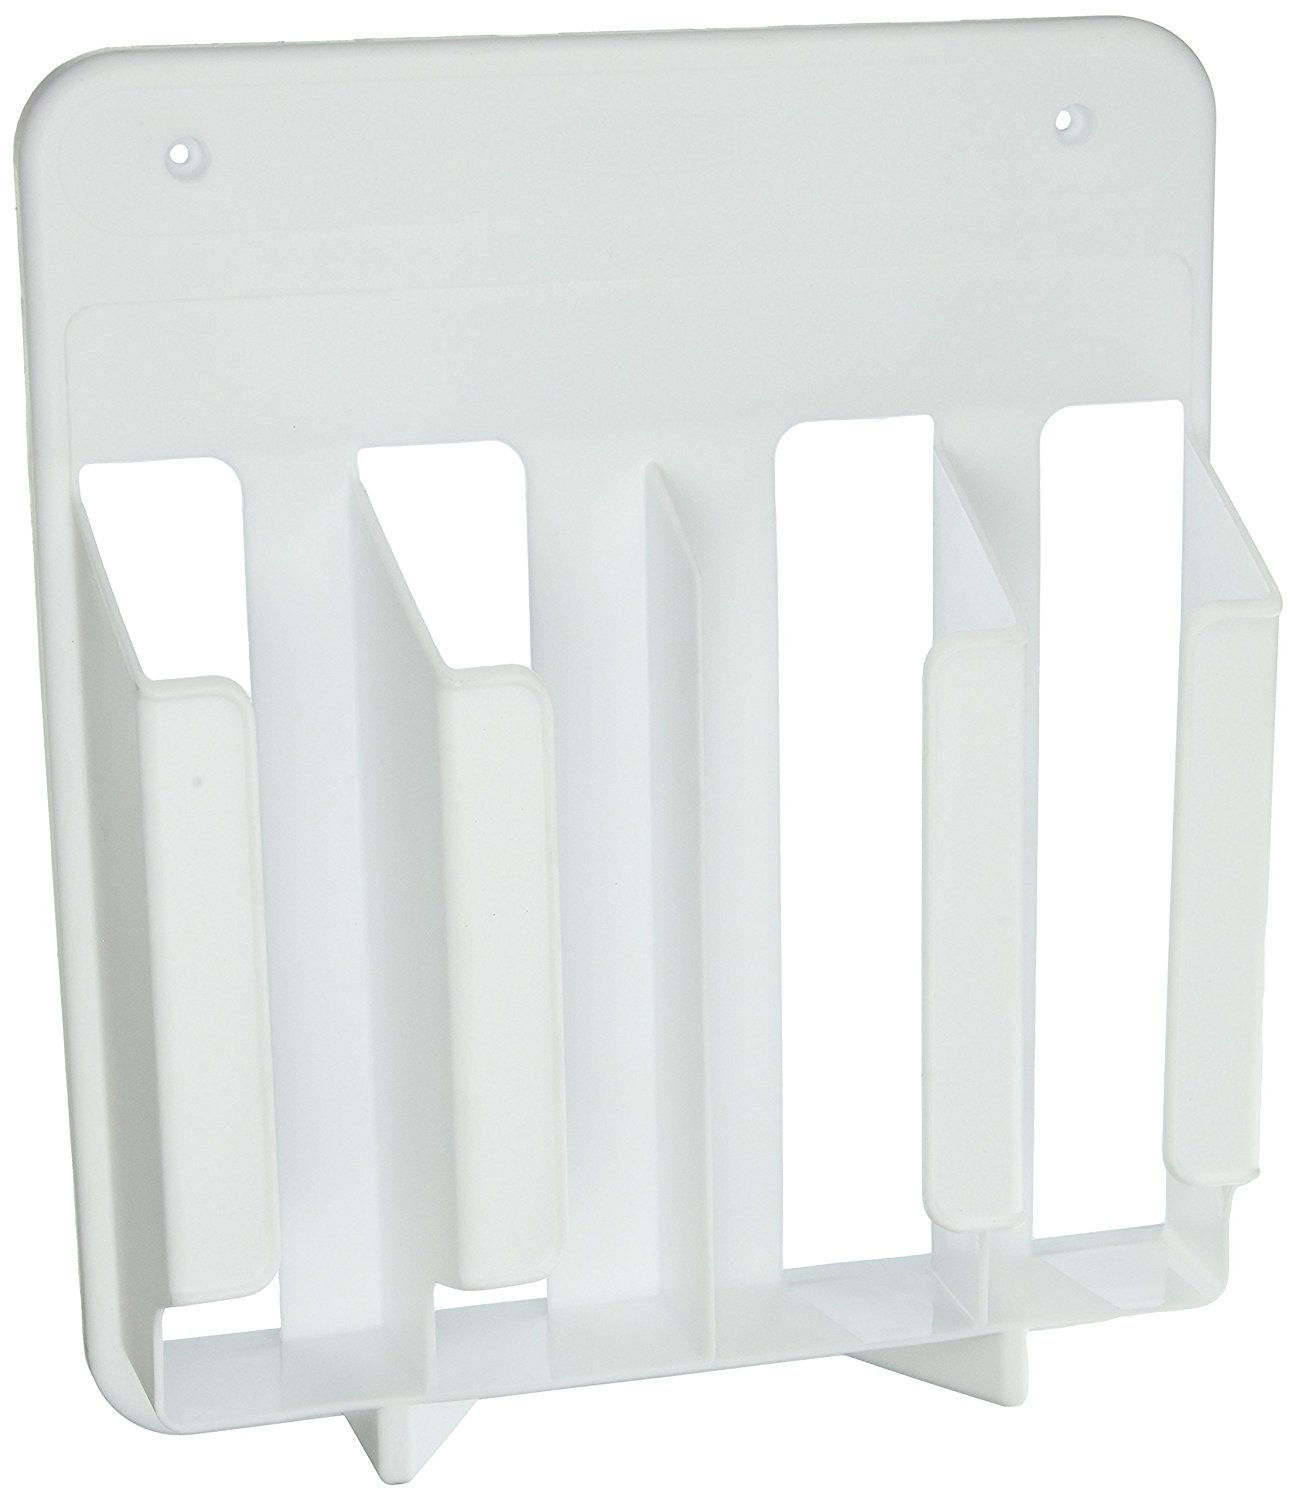 Superieur Brand New Rubbermaid Cabinet Door Mounted Kitchen Wrap And Bag Organizer  Storage Rack Clear, High Quality   Walmart.com